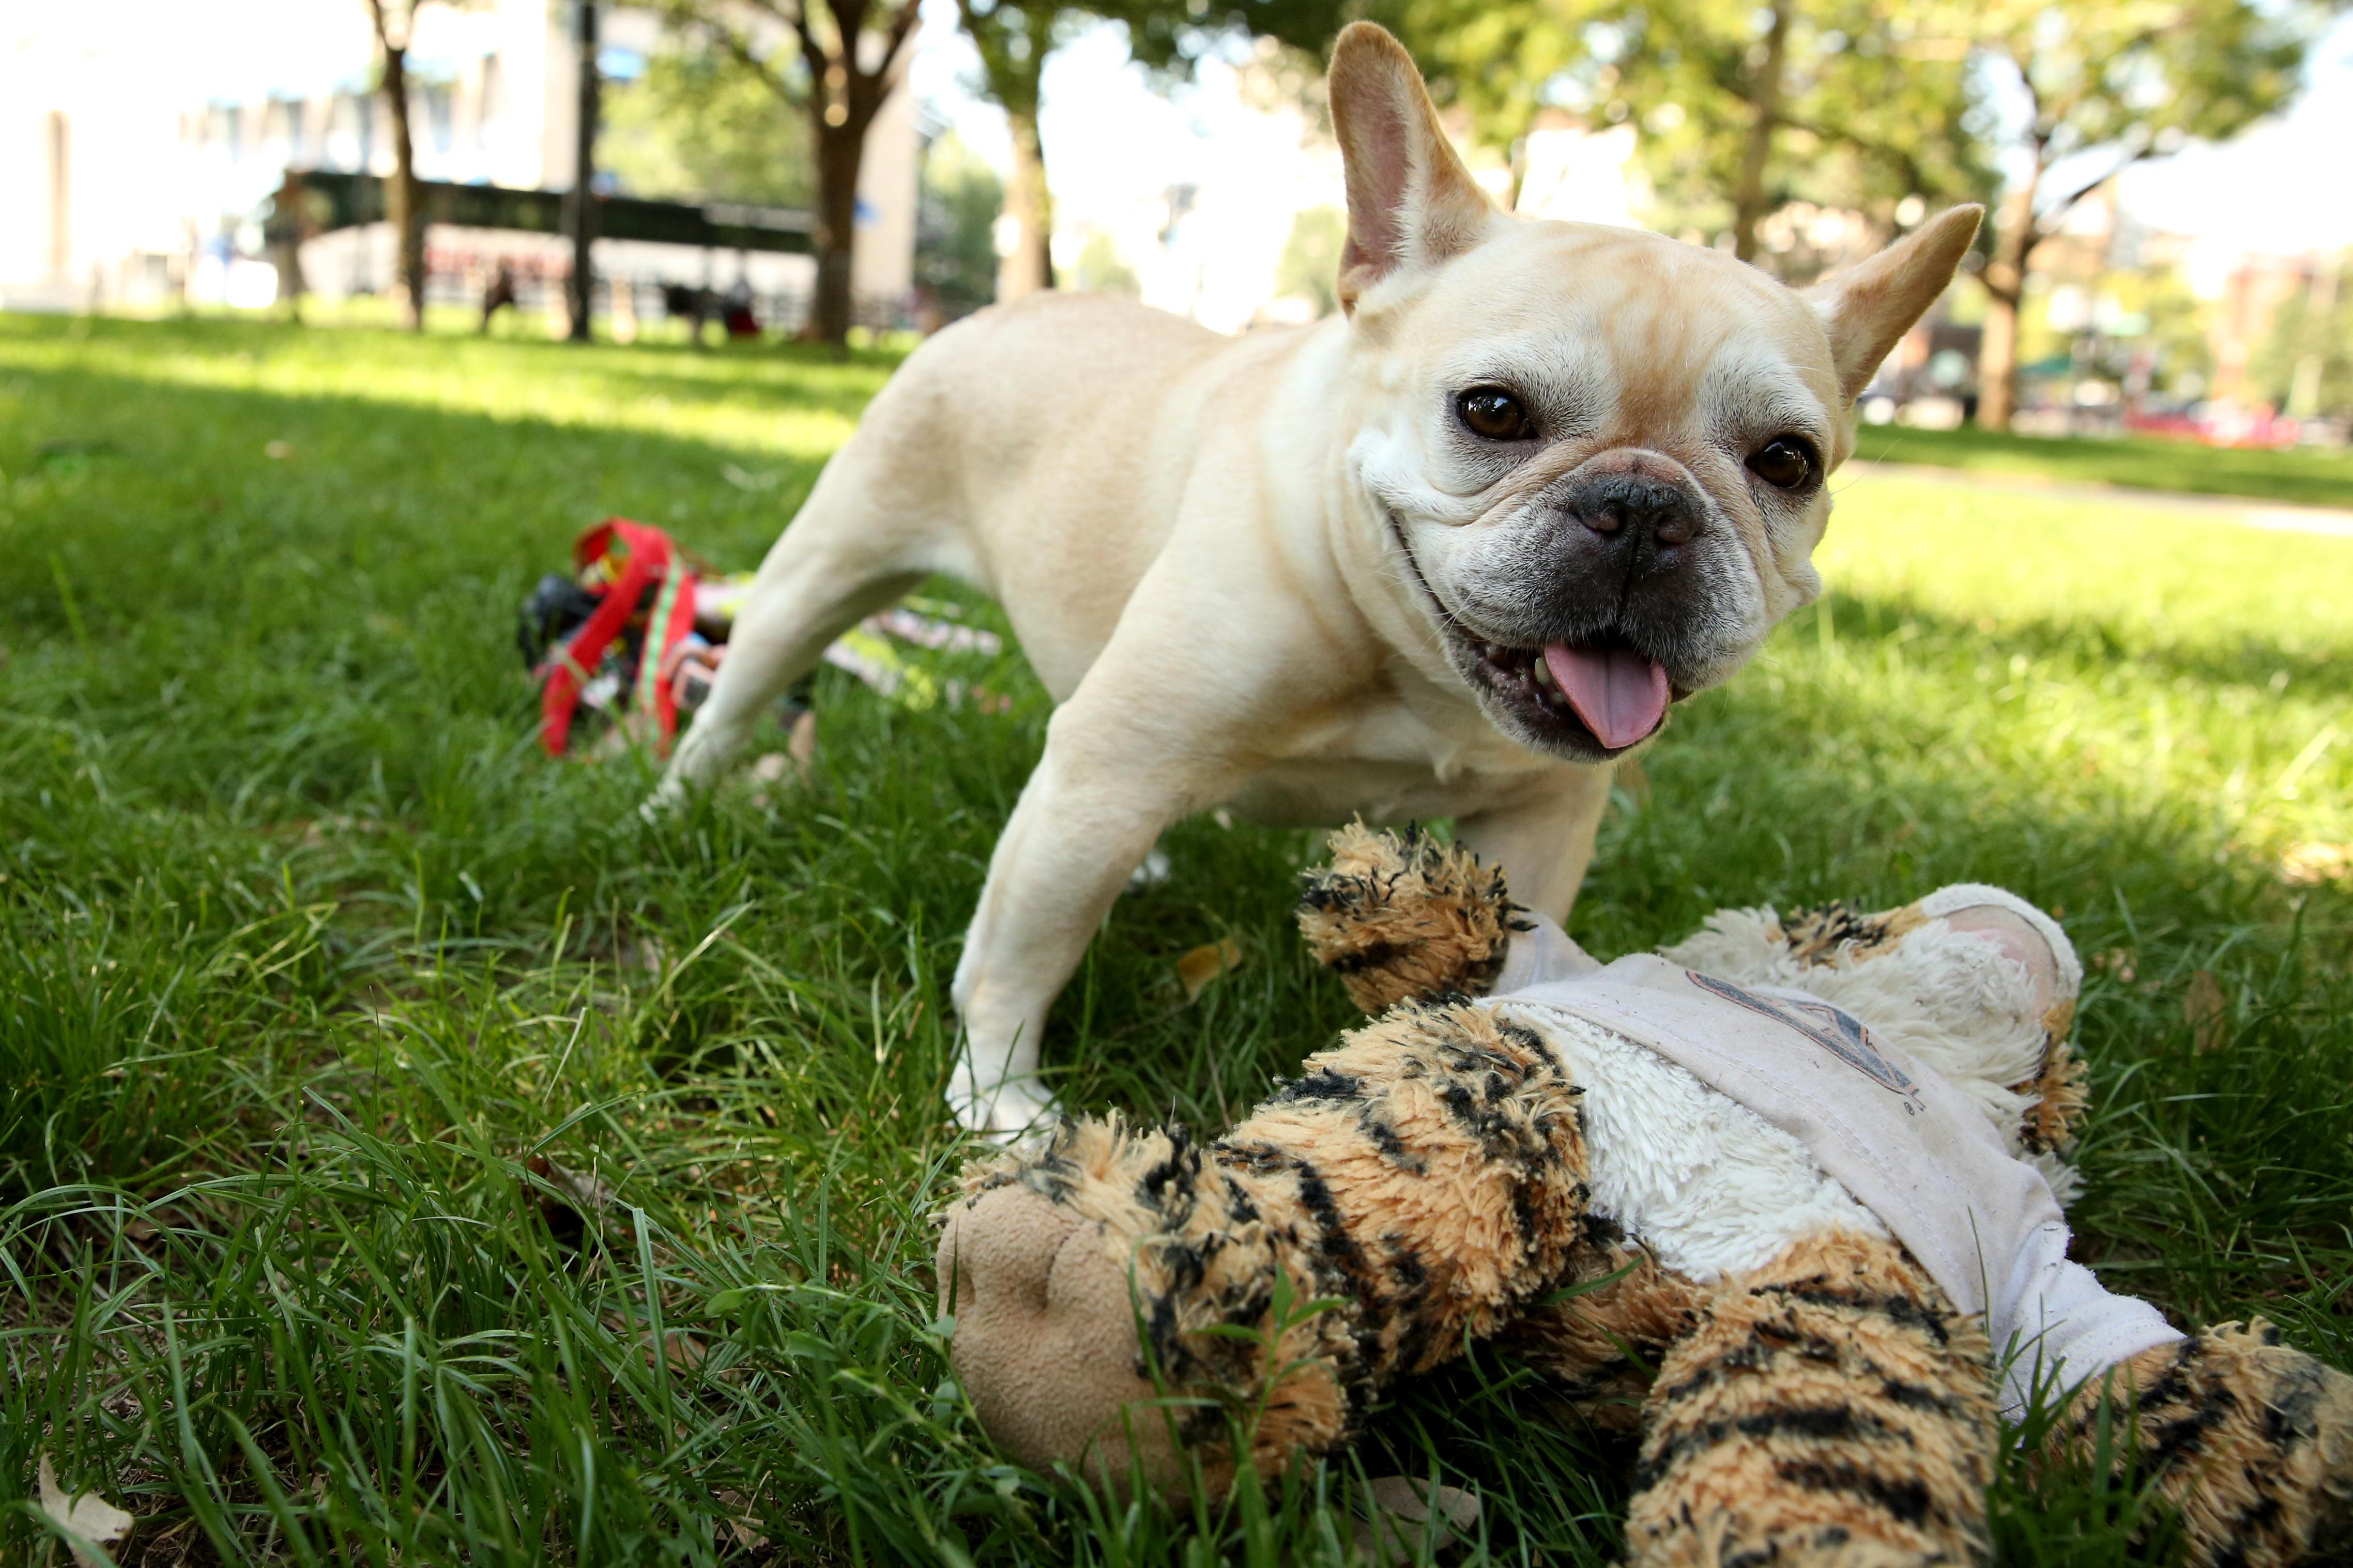 Meet Chloe, an almost six-year-old (we hear someone is having a birthday pawty next month) French Bulldog, who became somewhat of an Instagram star last year. Despite her adoring fans, Chloe hasn't become a diva and loves yoga stretches, any human food (especially peanut butter), pets from strangers on the sidewalk, wrestling with Dad, long naps on the sofa, and a nice, soft blanket. She's not a big fan of running --  or any exercise in general -- waking up early, rain or the sight of Mom and Dad packing suitcases. But Chloe's true love of life is camping, and  camping in tents specifically. If you or someone you know has a pet you'd like featured, email us at dcrefined@gmail.com or tag #DCRUFFined and your furbaby could be the next spotlighted! (Image: Amanda Andrade-Rhoades/ DC Refined)